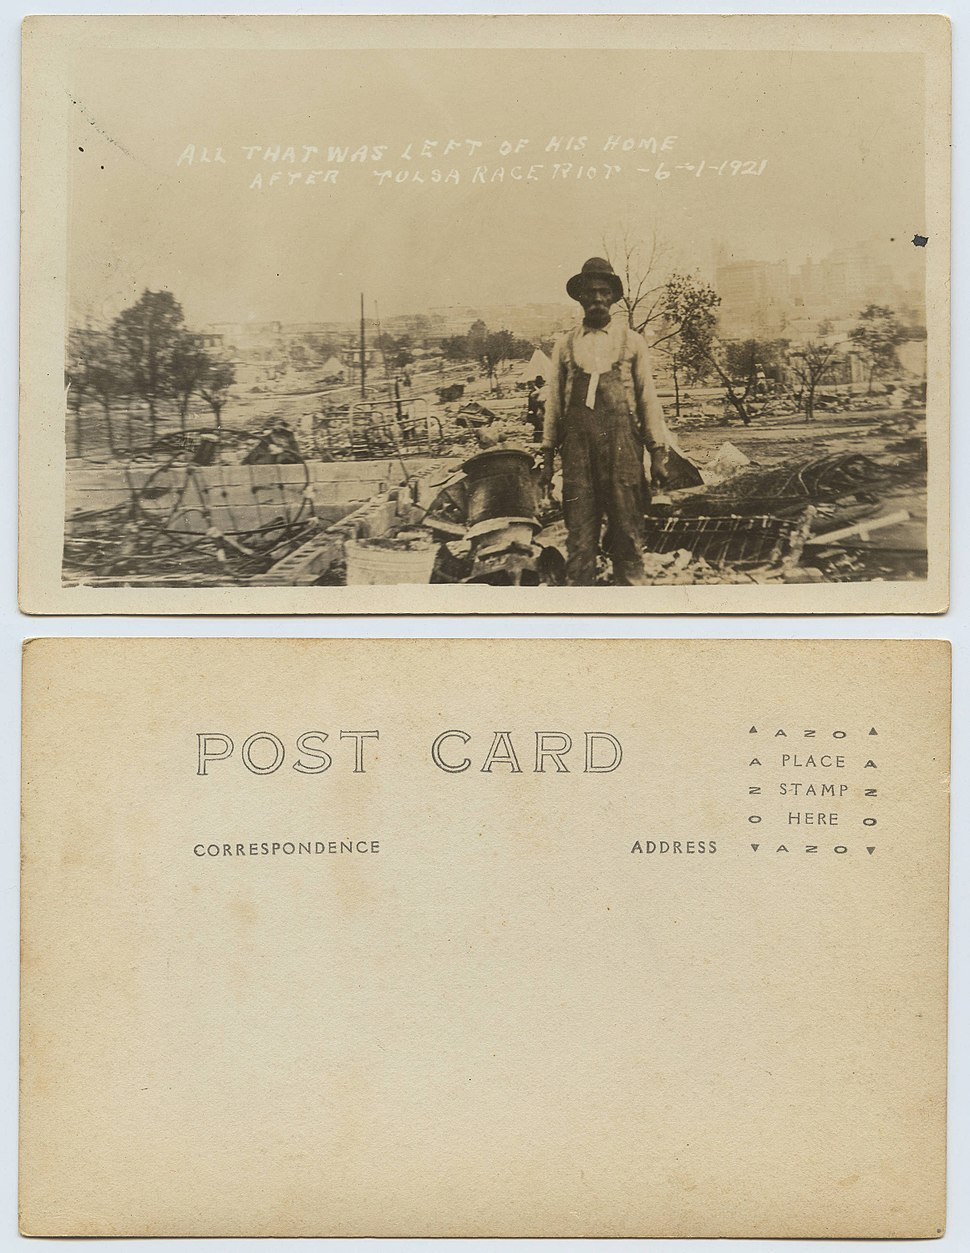 All That Was Left of His Home after the Tulsa Race Riot, 6-1-21 (Ag2013.0002)